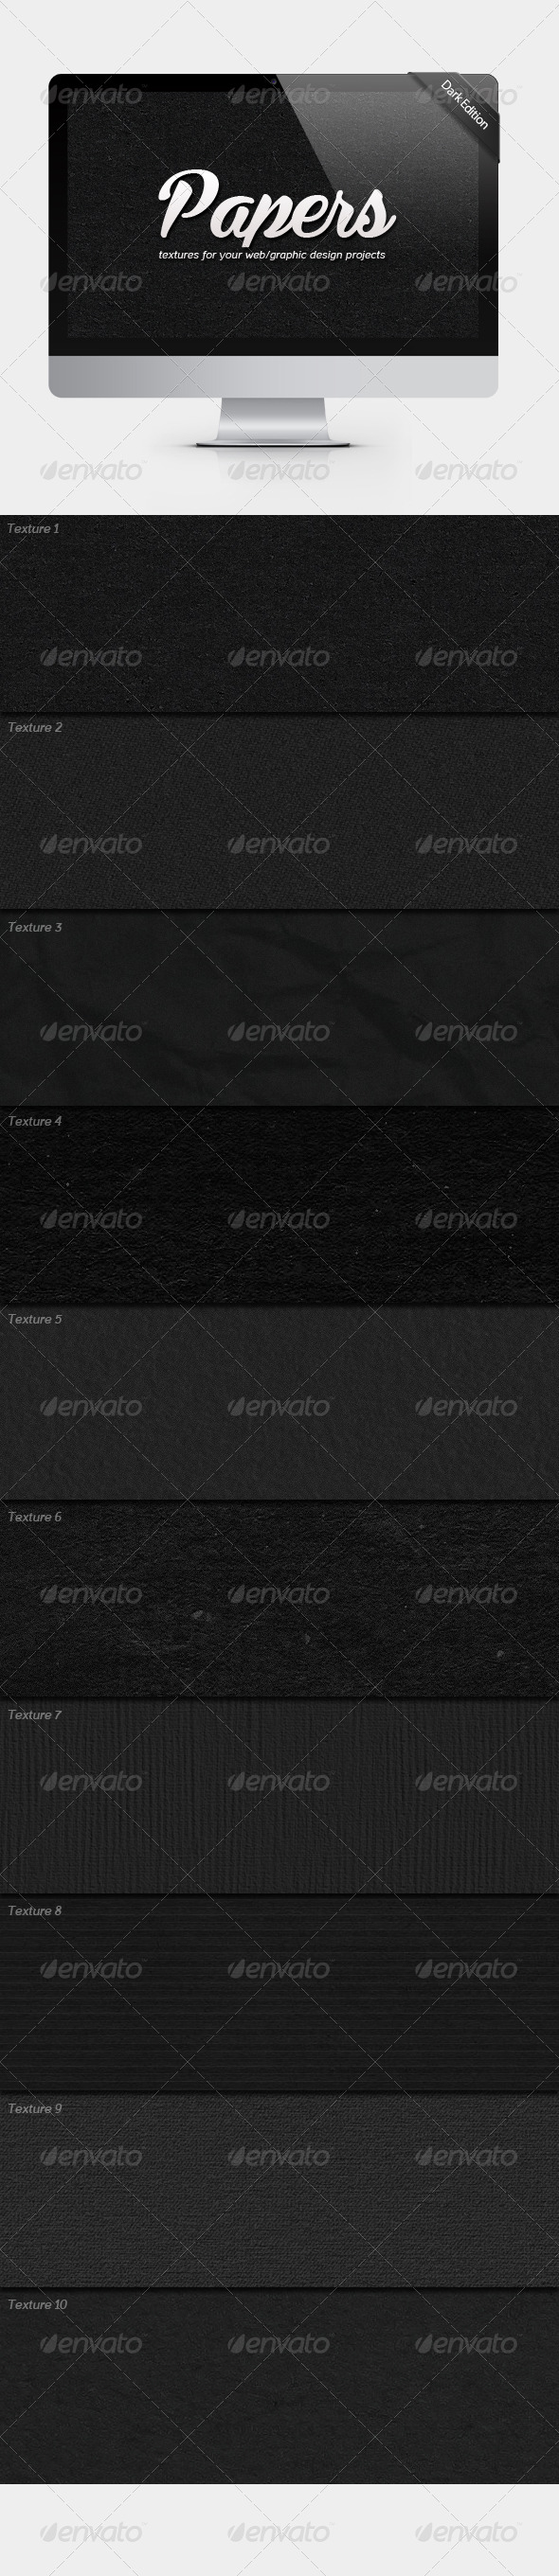 GraphicRiver Papers Dark Edition 5256819